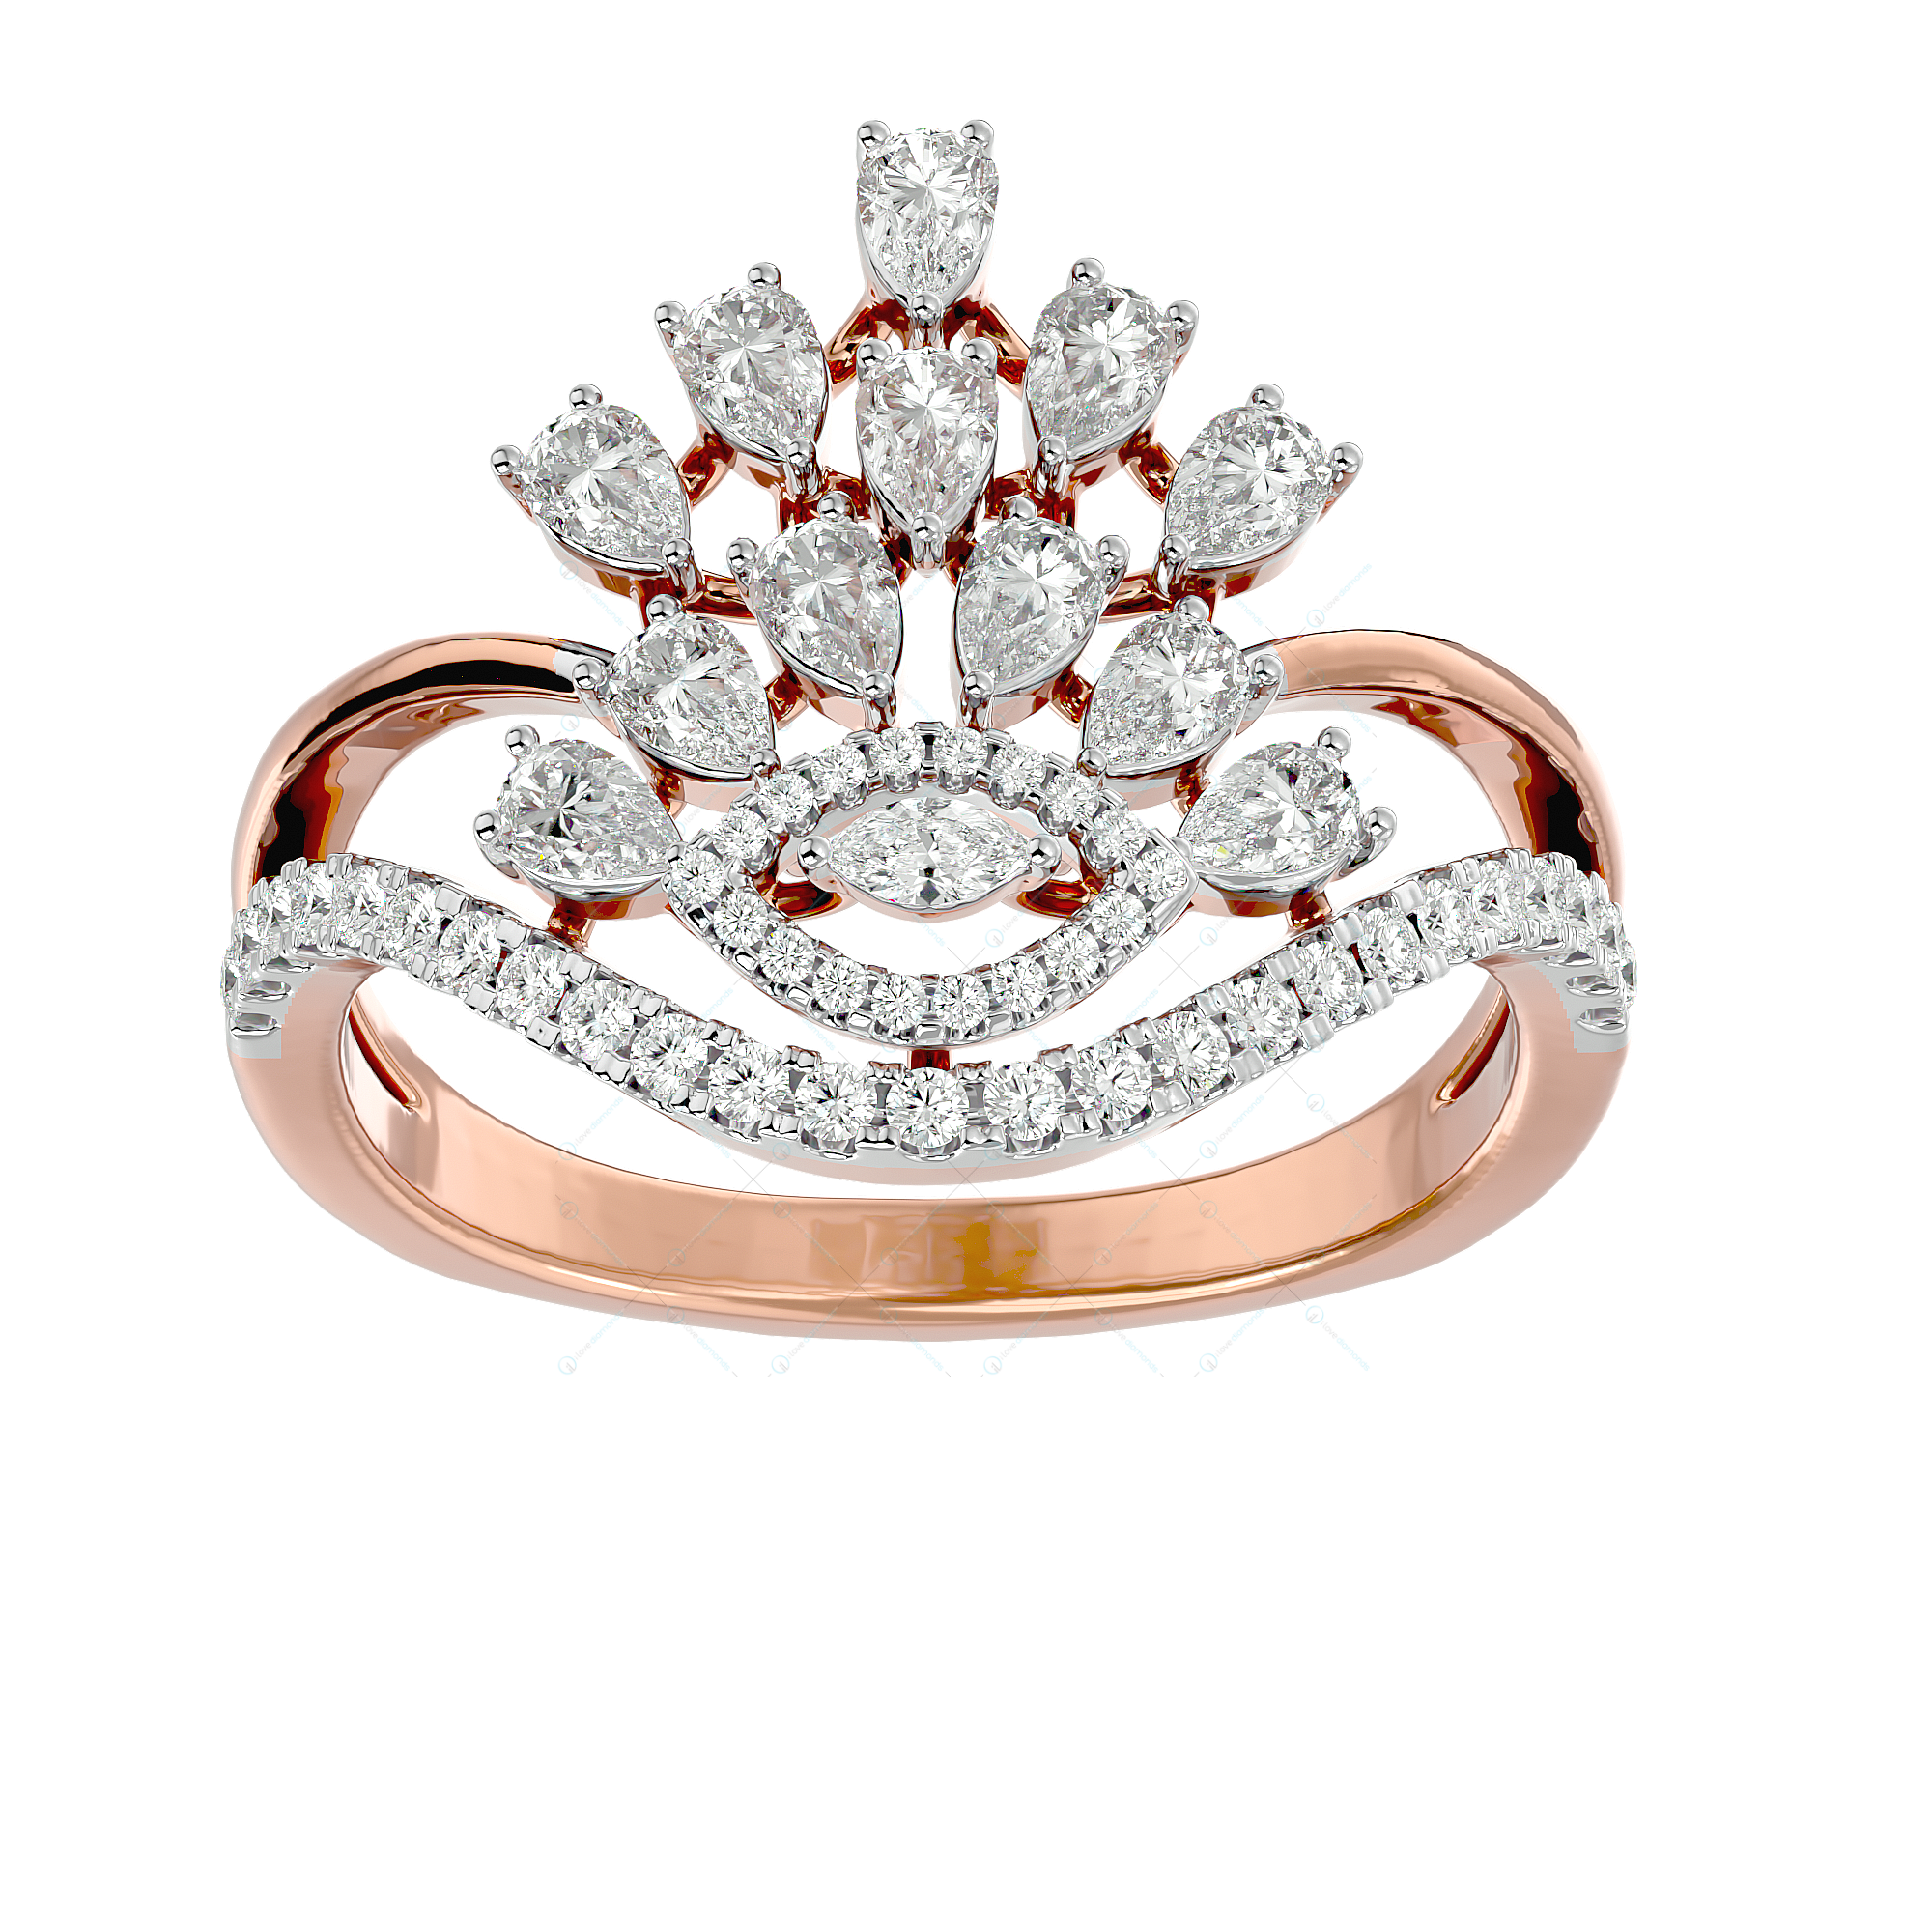 Princess Possession Diamond Ring In Yellow Gold For Women v2